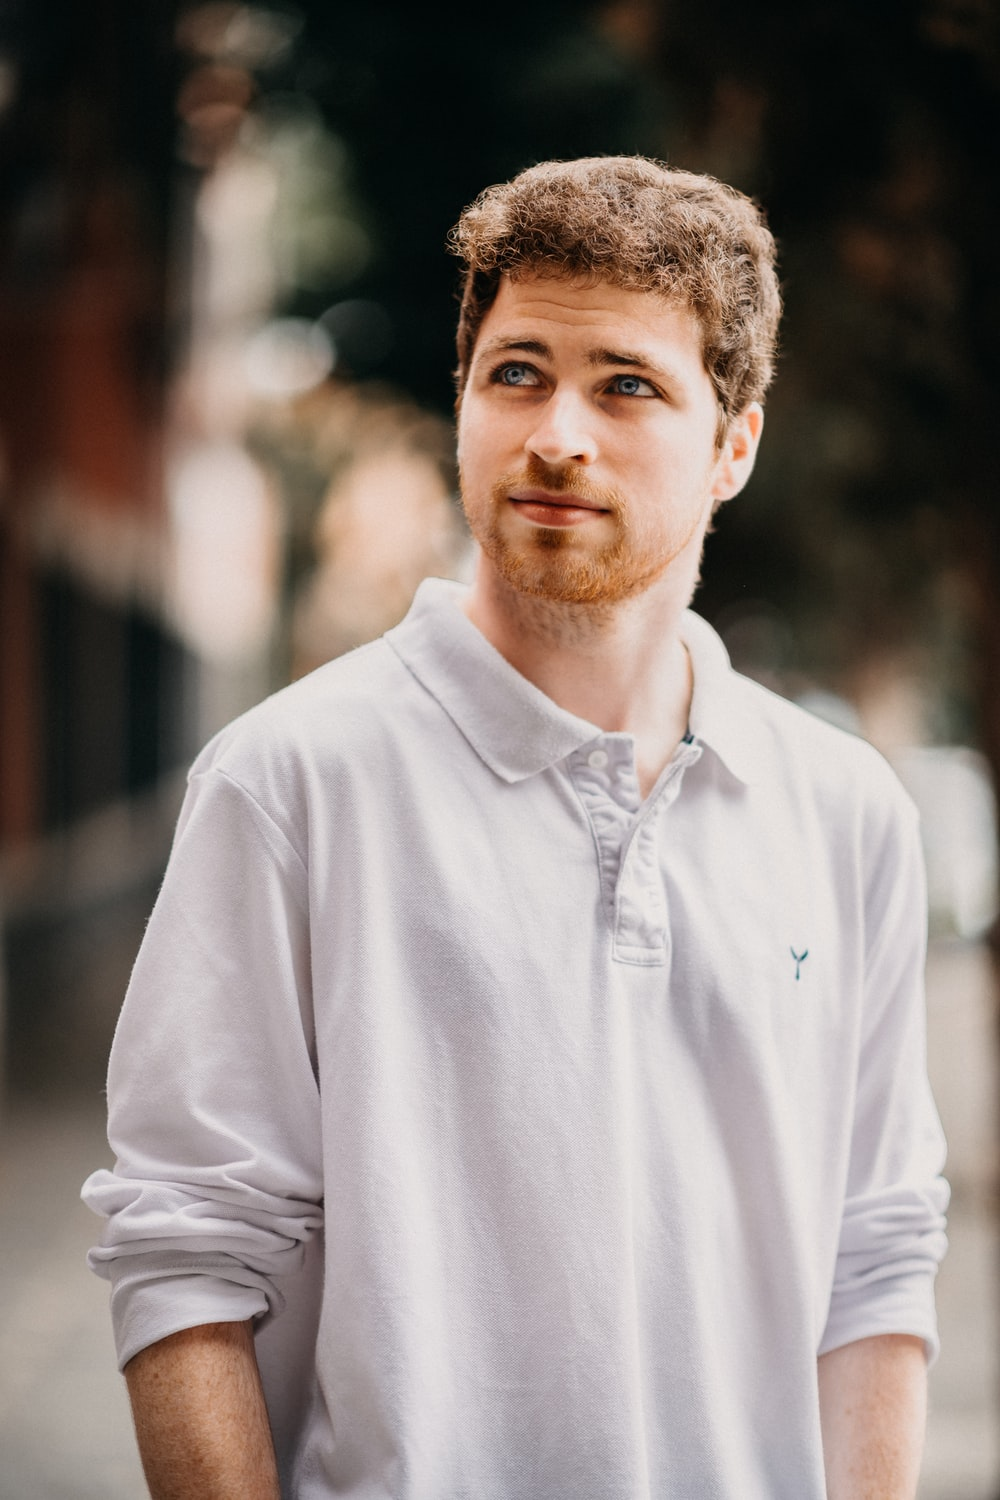 man in white collared long-sleeved shirt standing outdoors